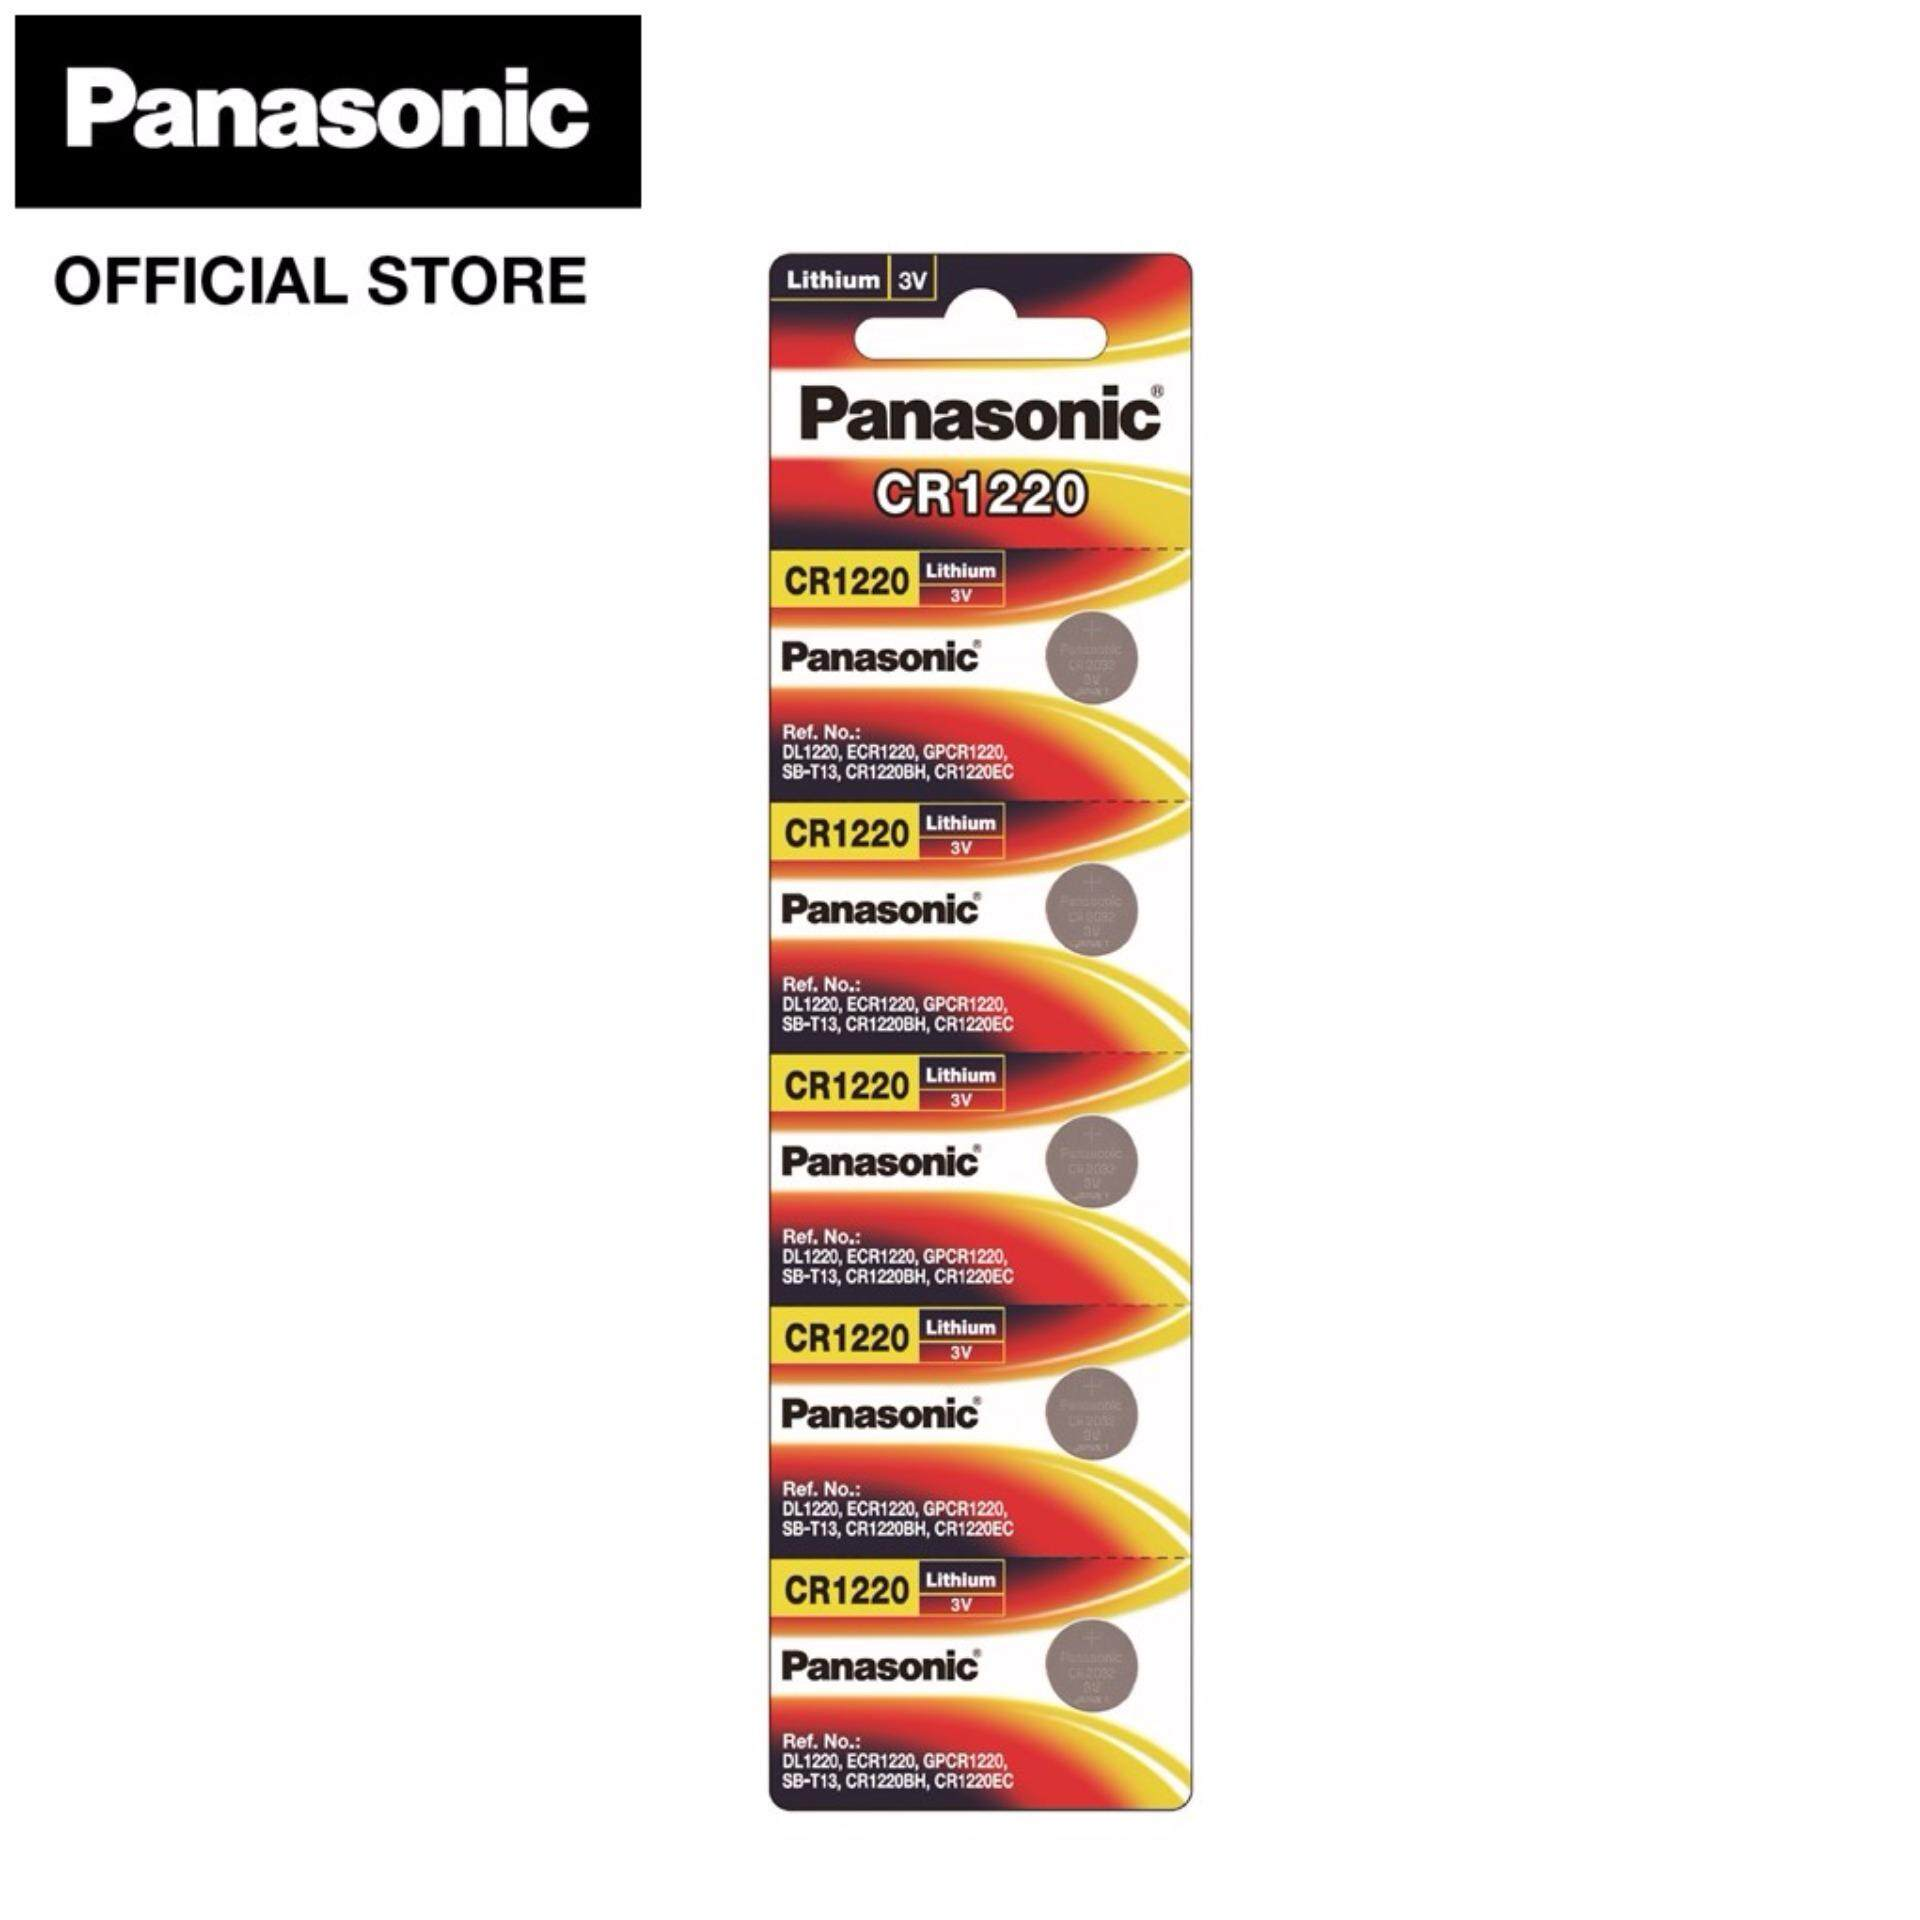 Panasonic Lithium Coin Batteries CR1220 5pcs pack Malaysia